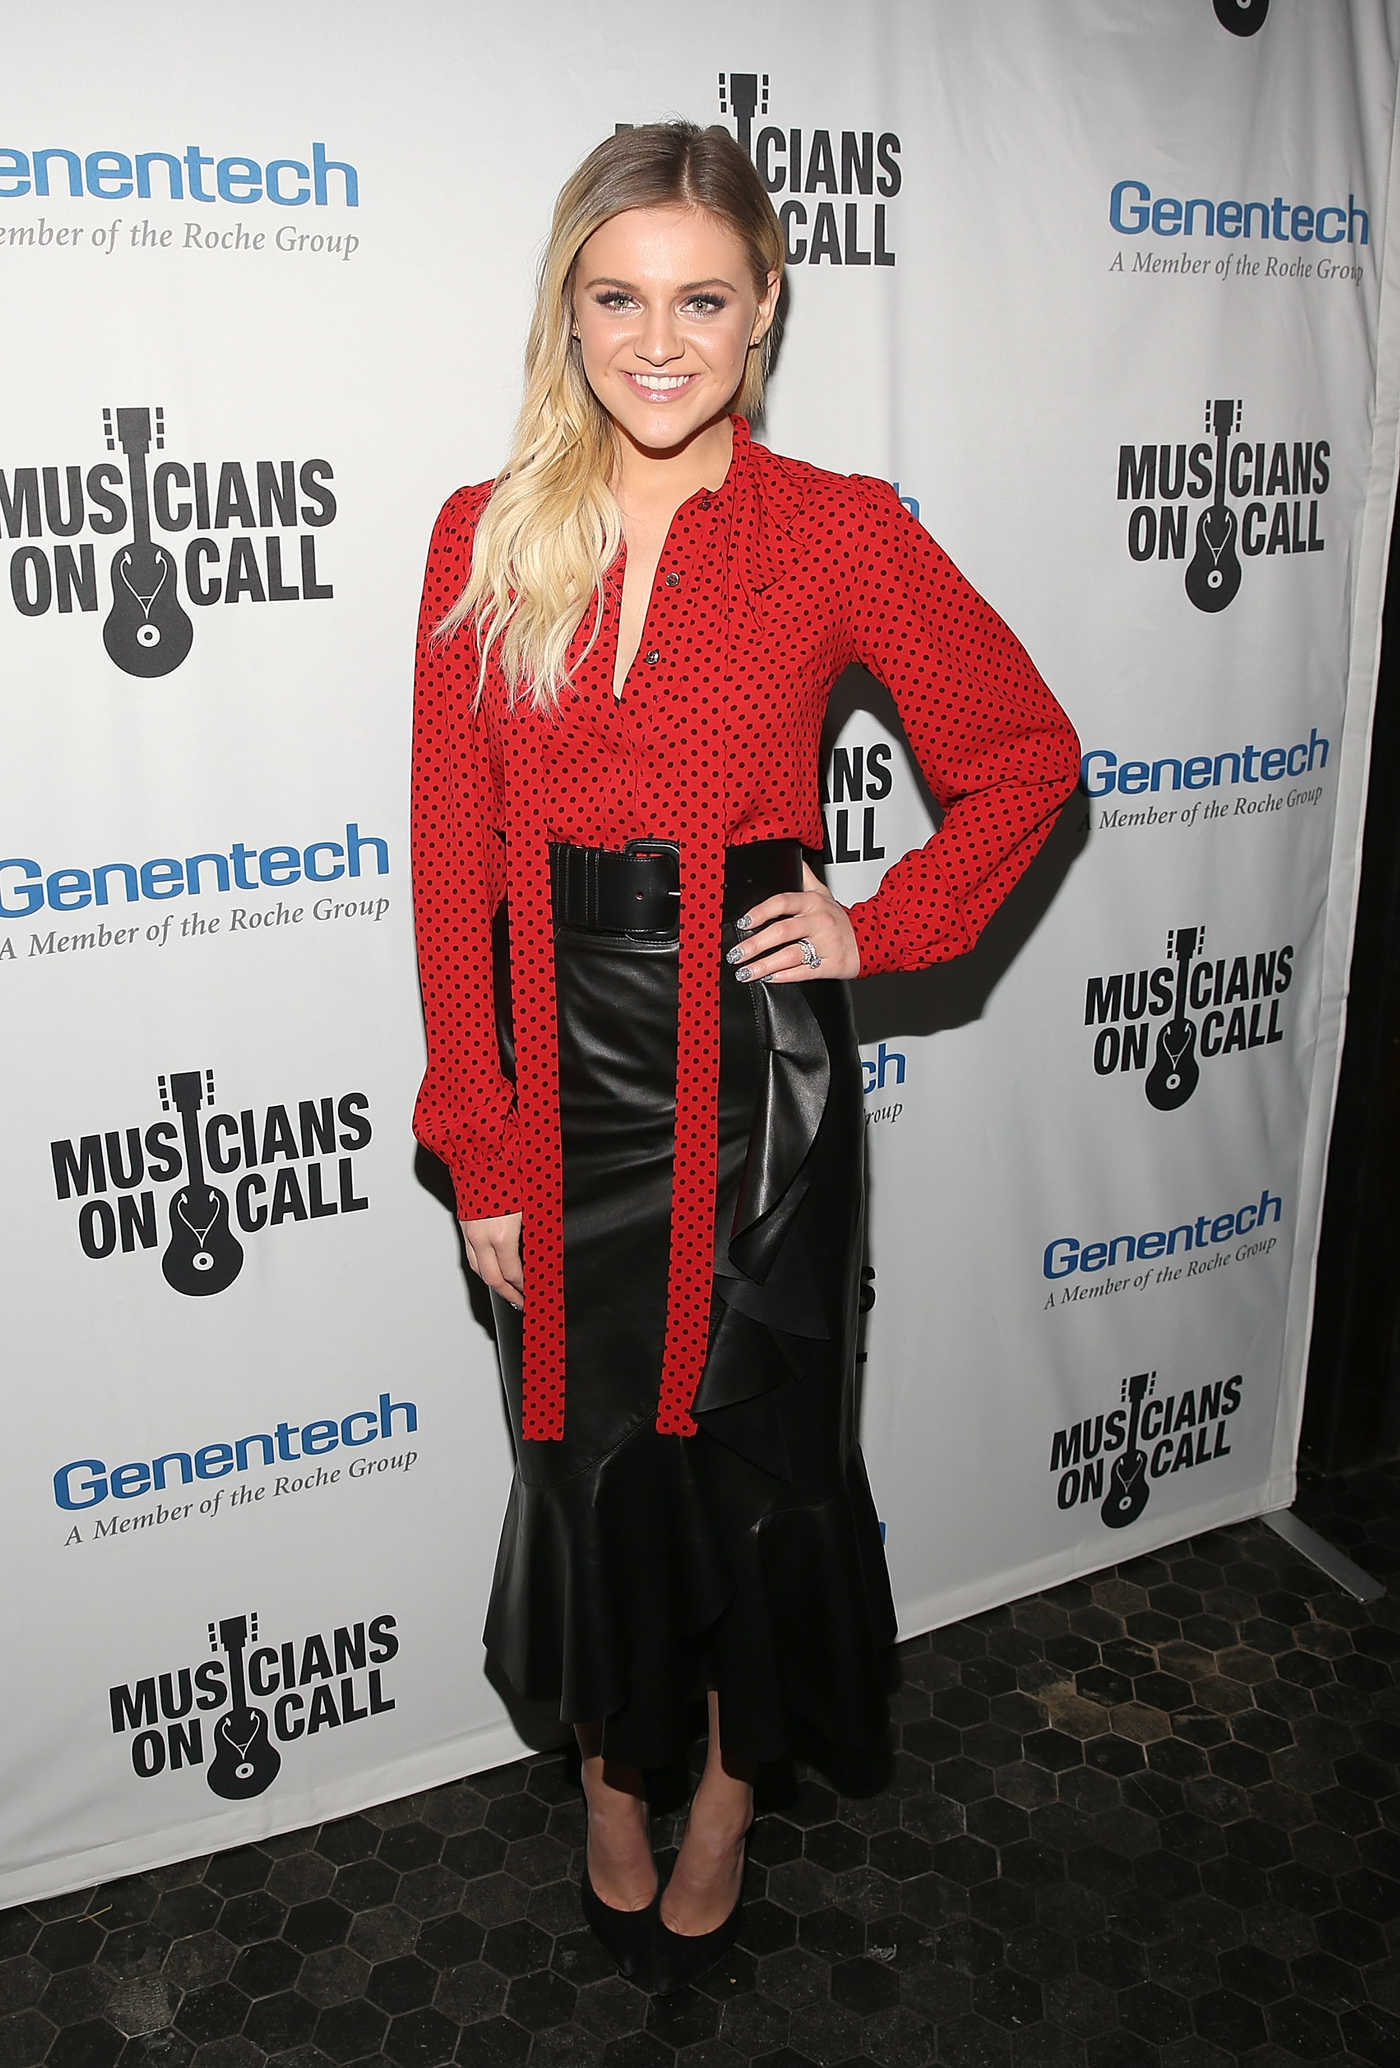 Kelsea Ballerini at the Musicians on Call 5th Anniversary Celebration in Los Angeles 02/28/2018